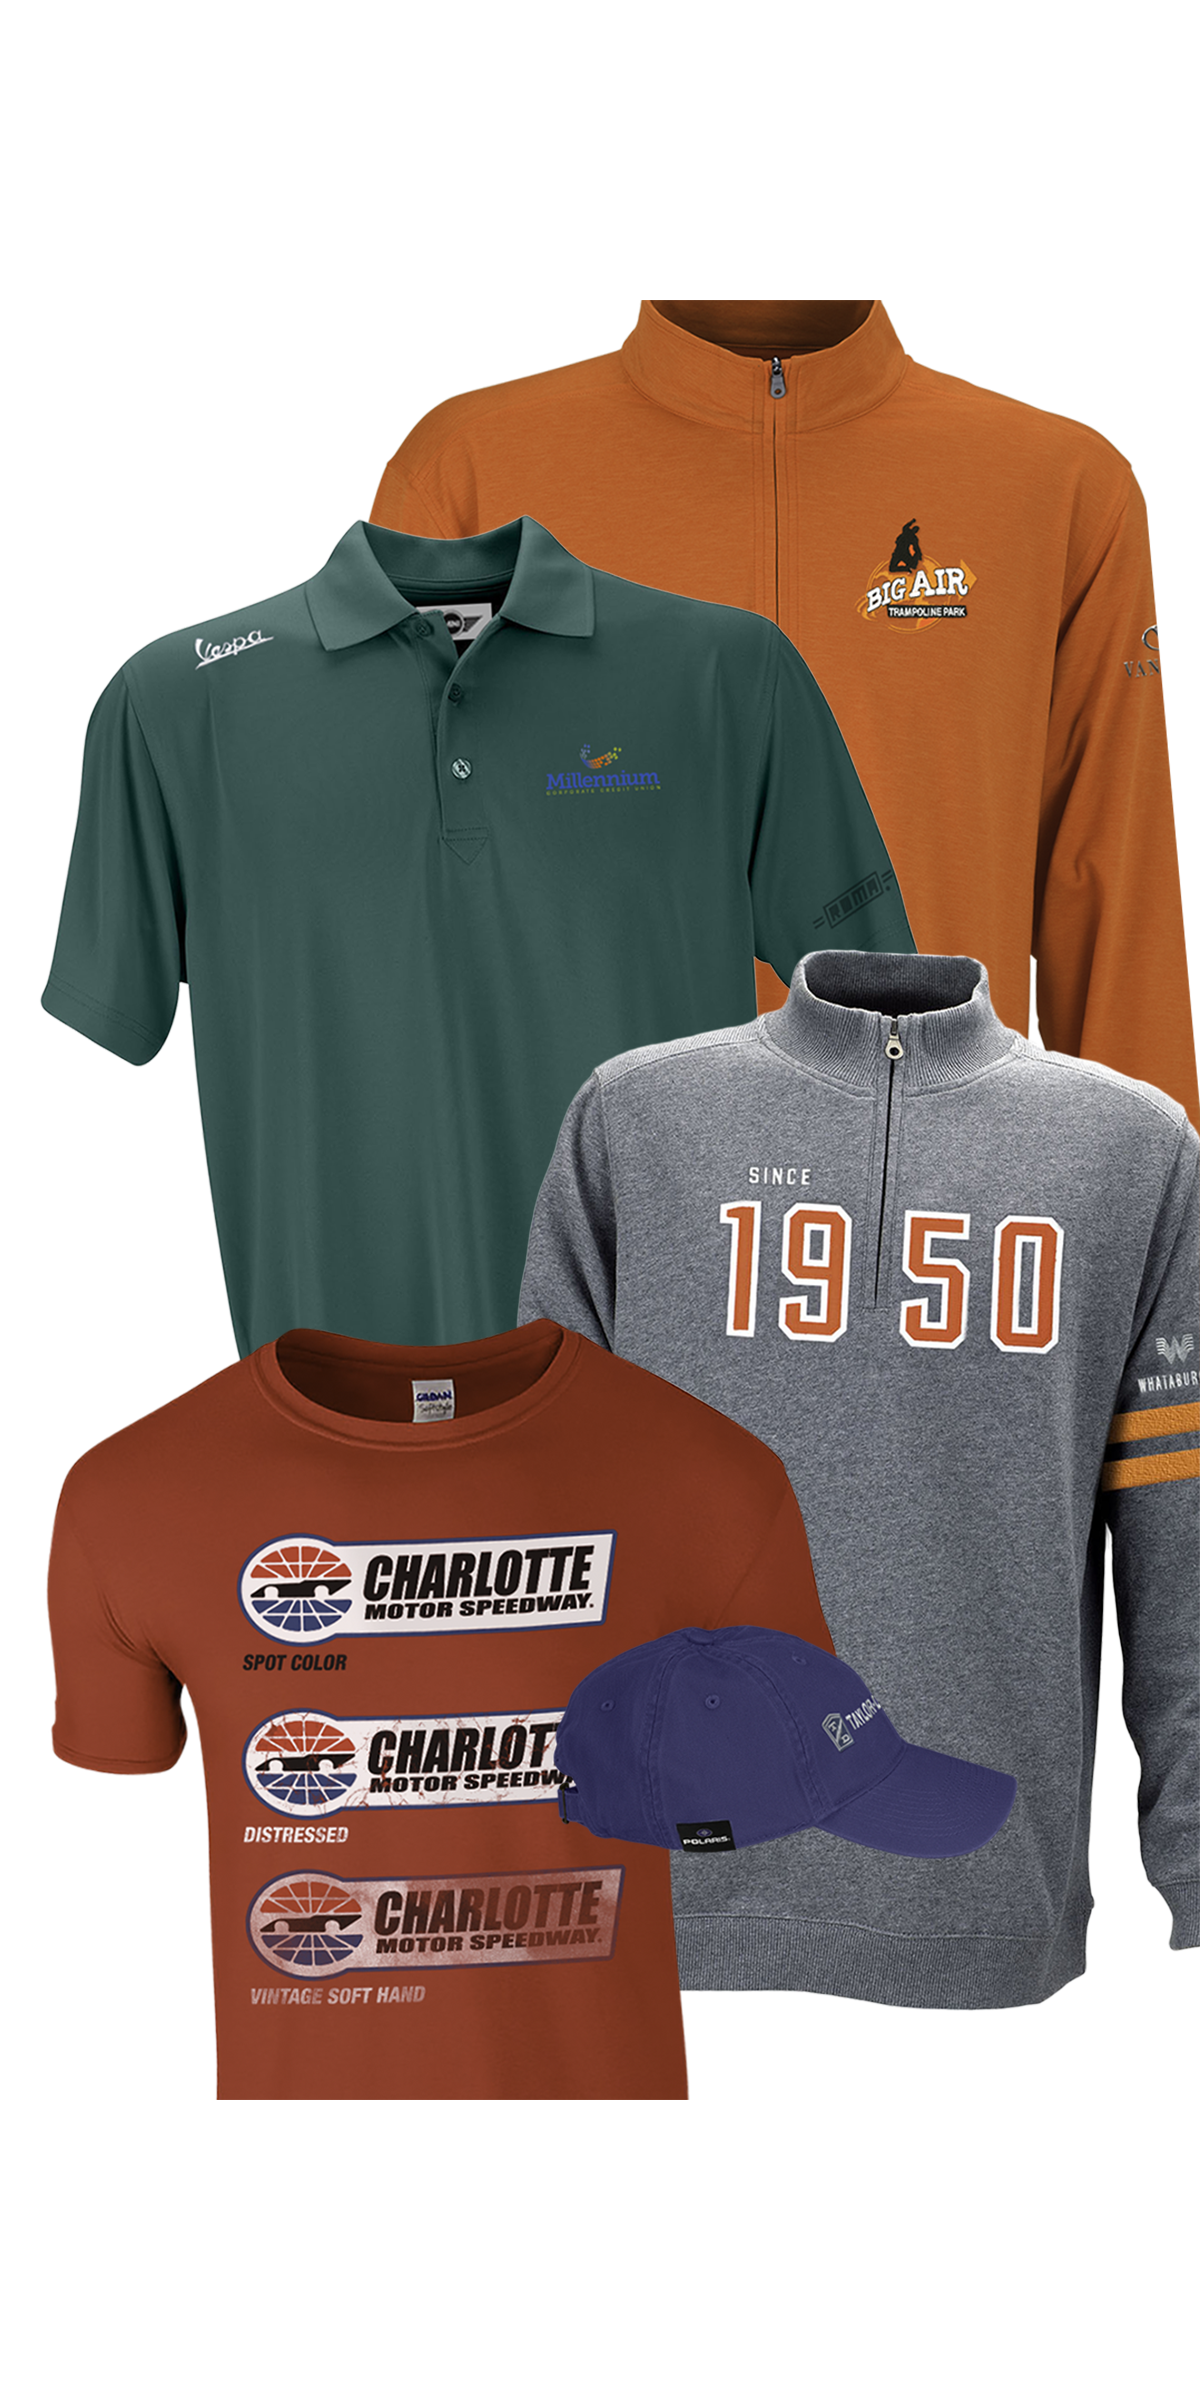 582e3c7bb199 Vantage Apparel - Nation's Top Supplier for Custom Logo Apparel